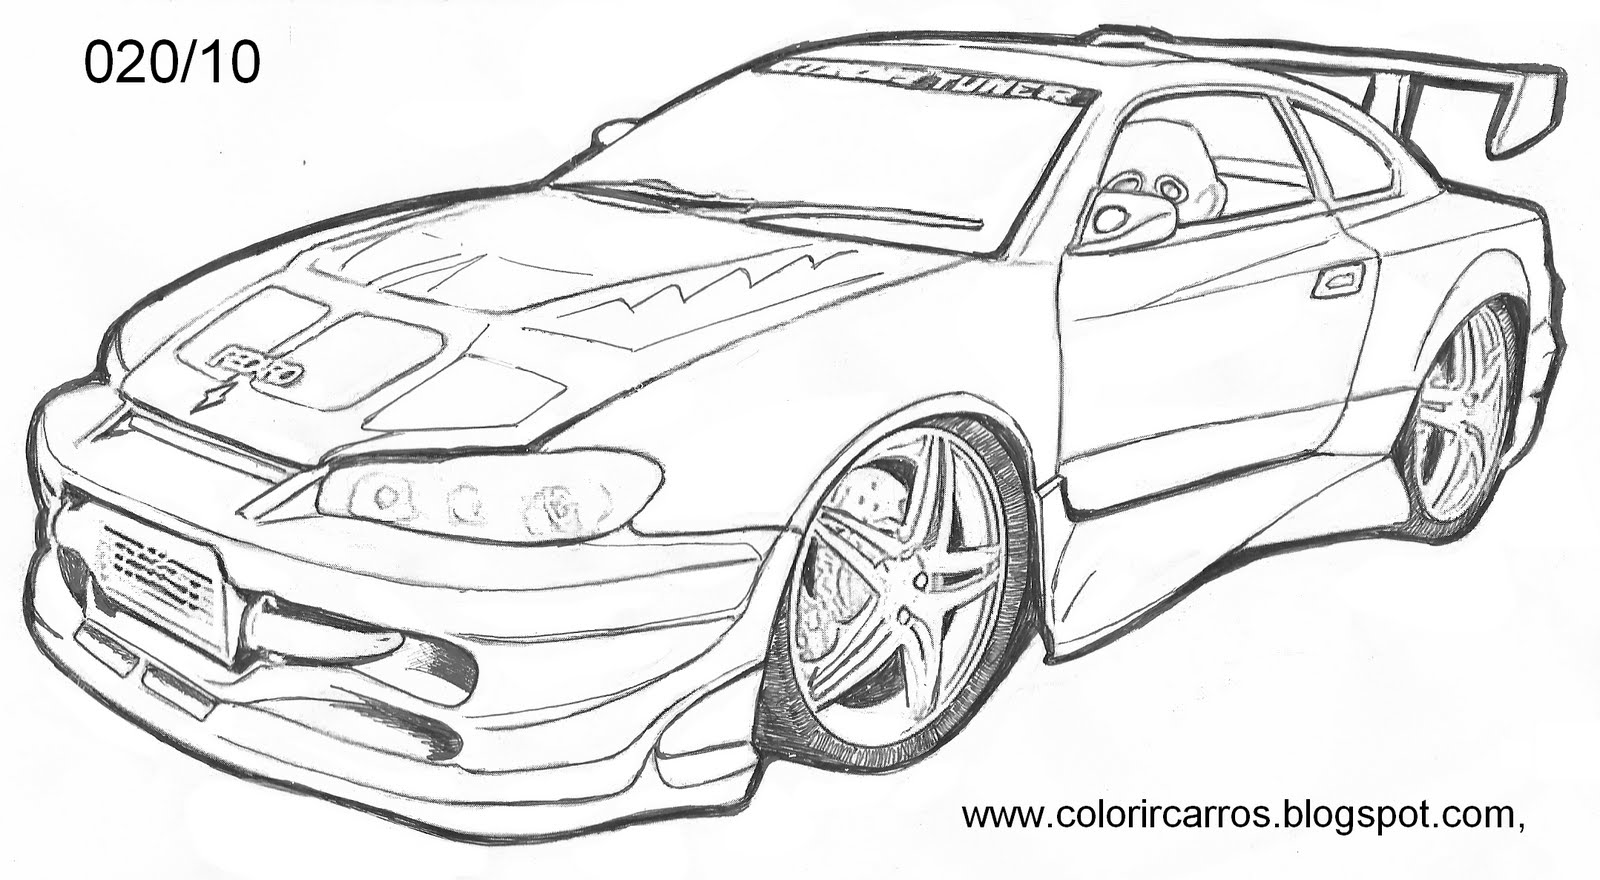 Camaro Coloring Books Adult Coloring Pages Camaro Coloring Pages